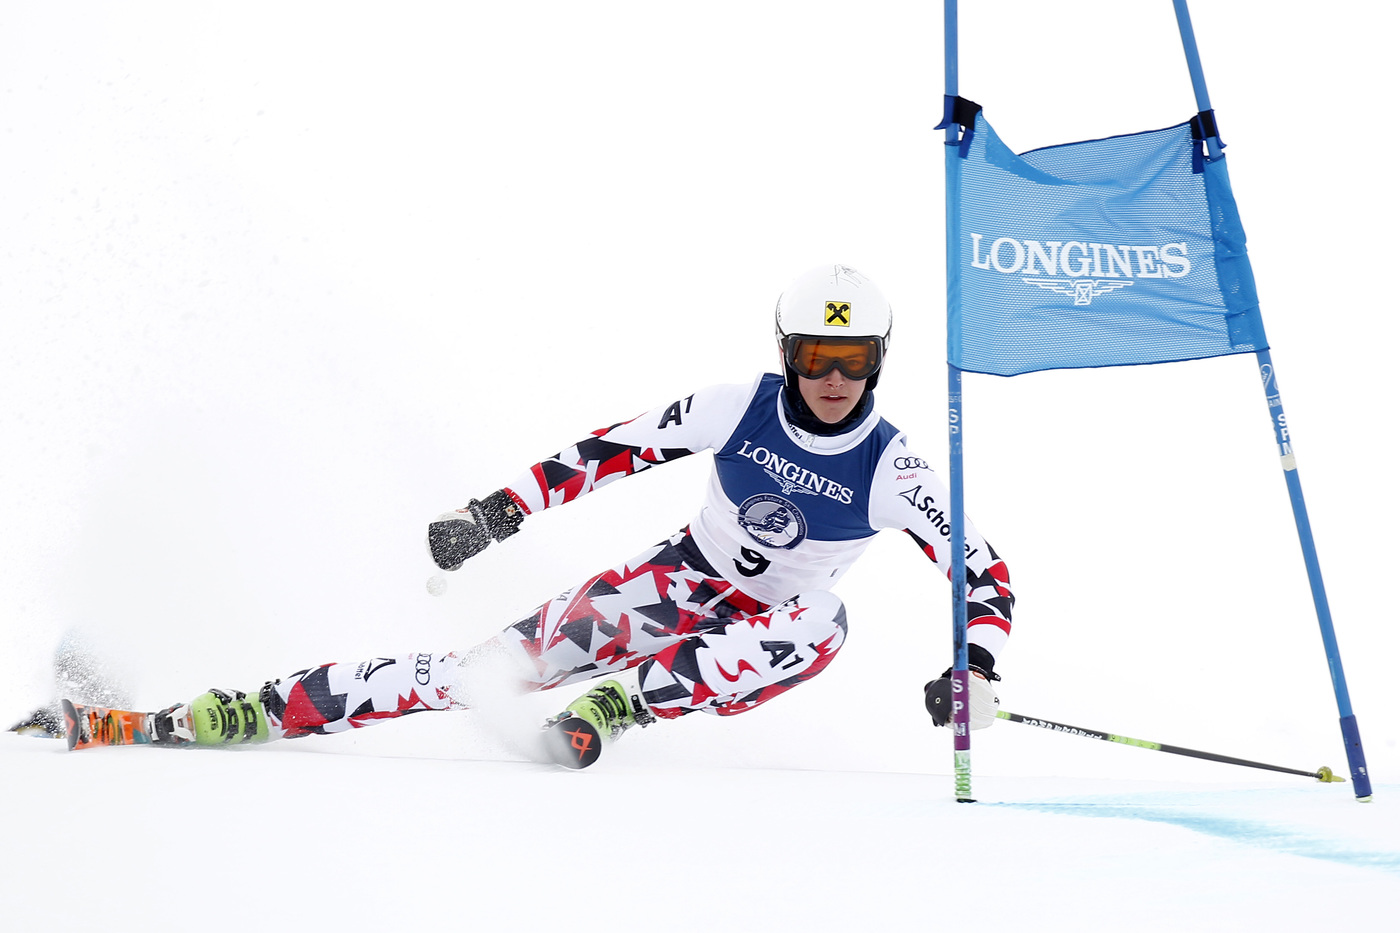 Longines Alpine Skiing Event: A new venue for the third edition of the Longines Future Ski Champions 19